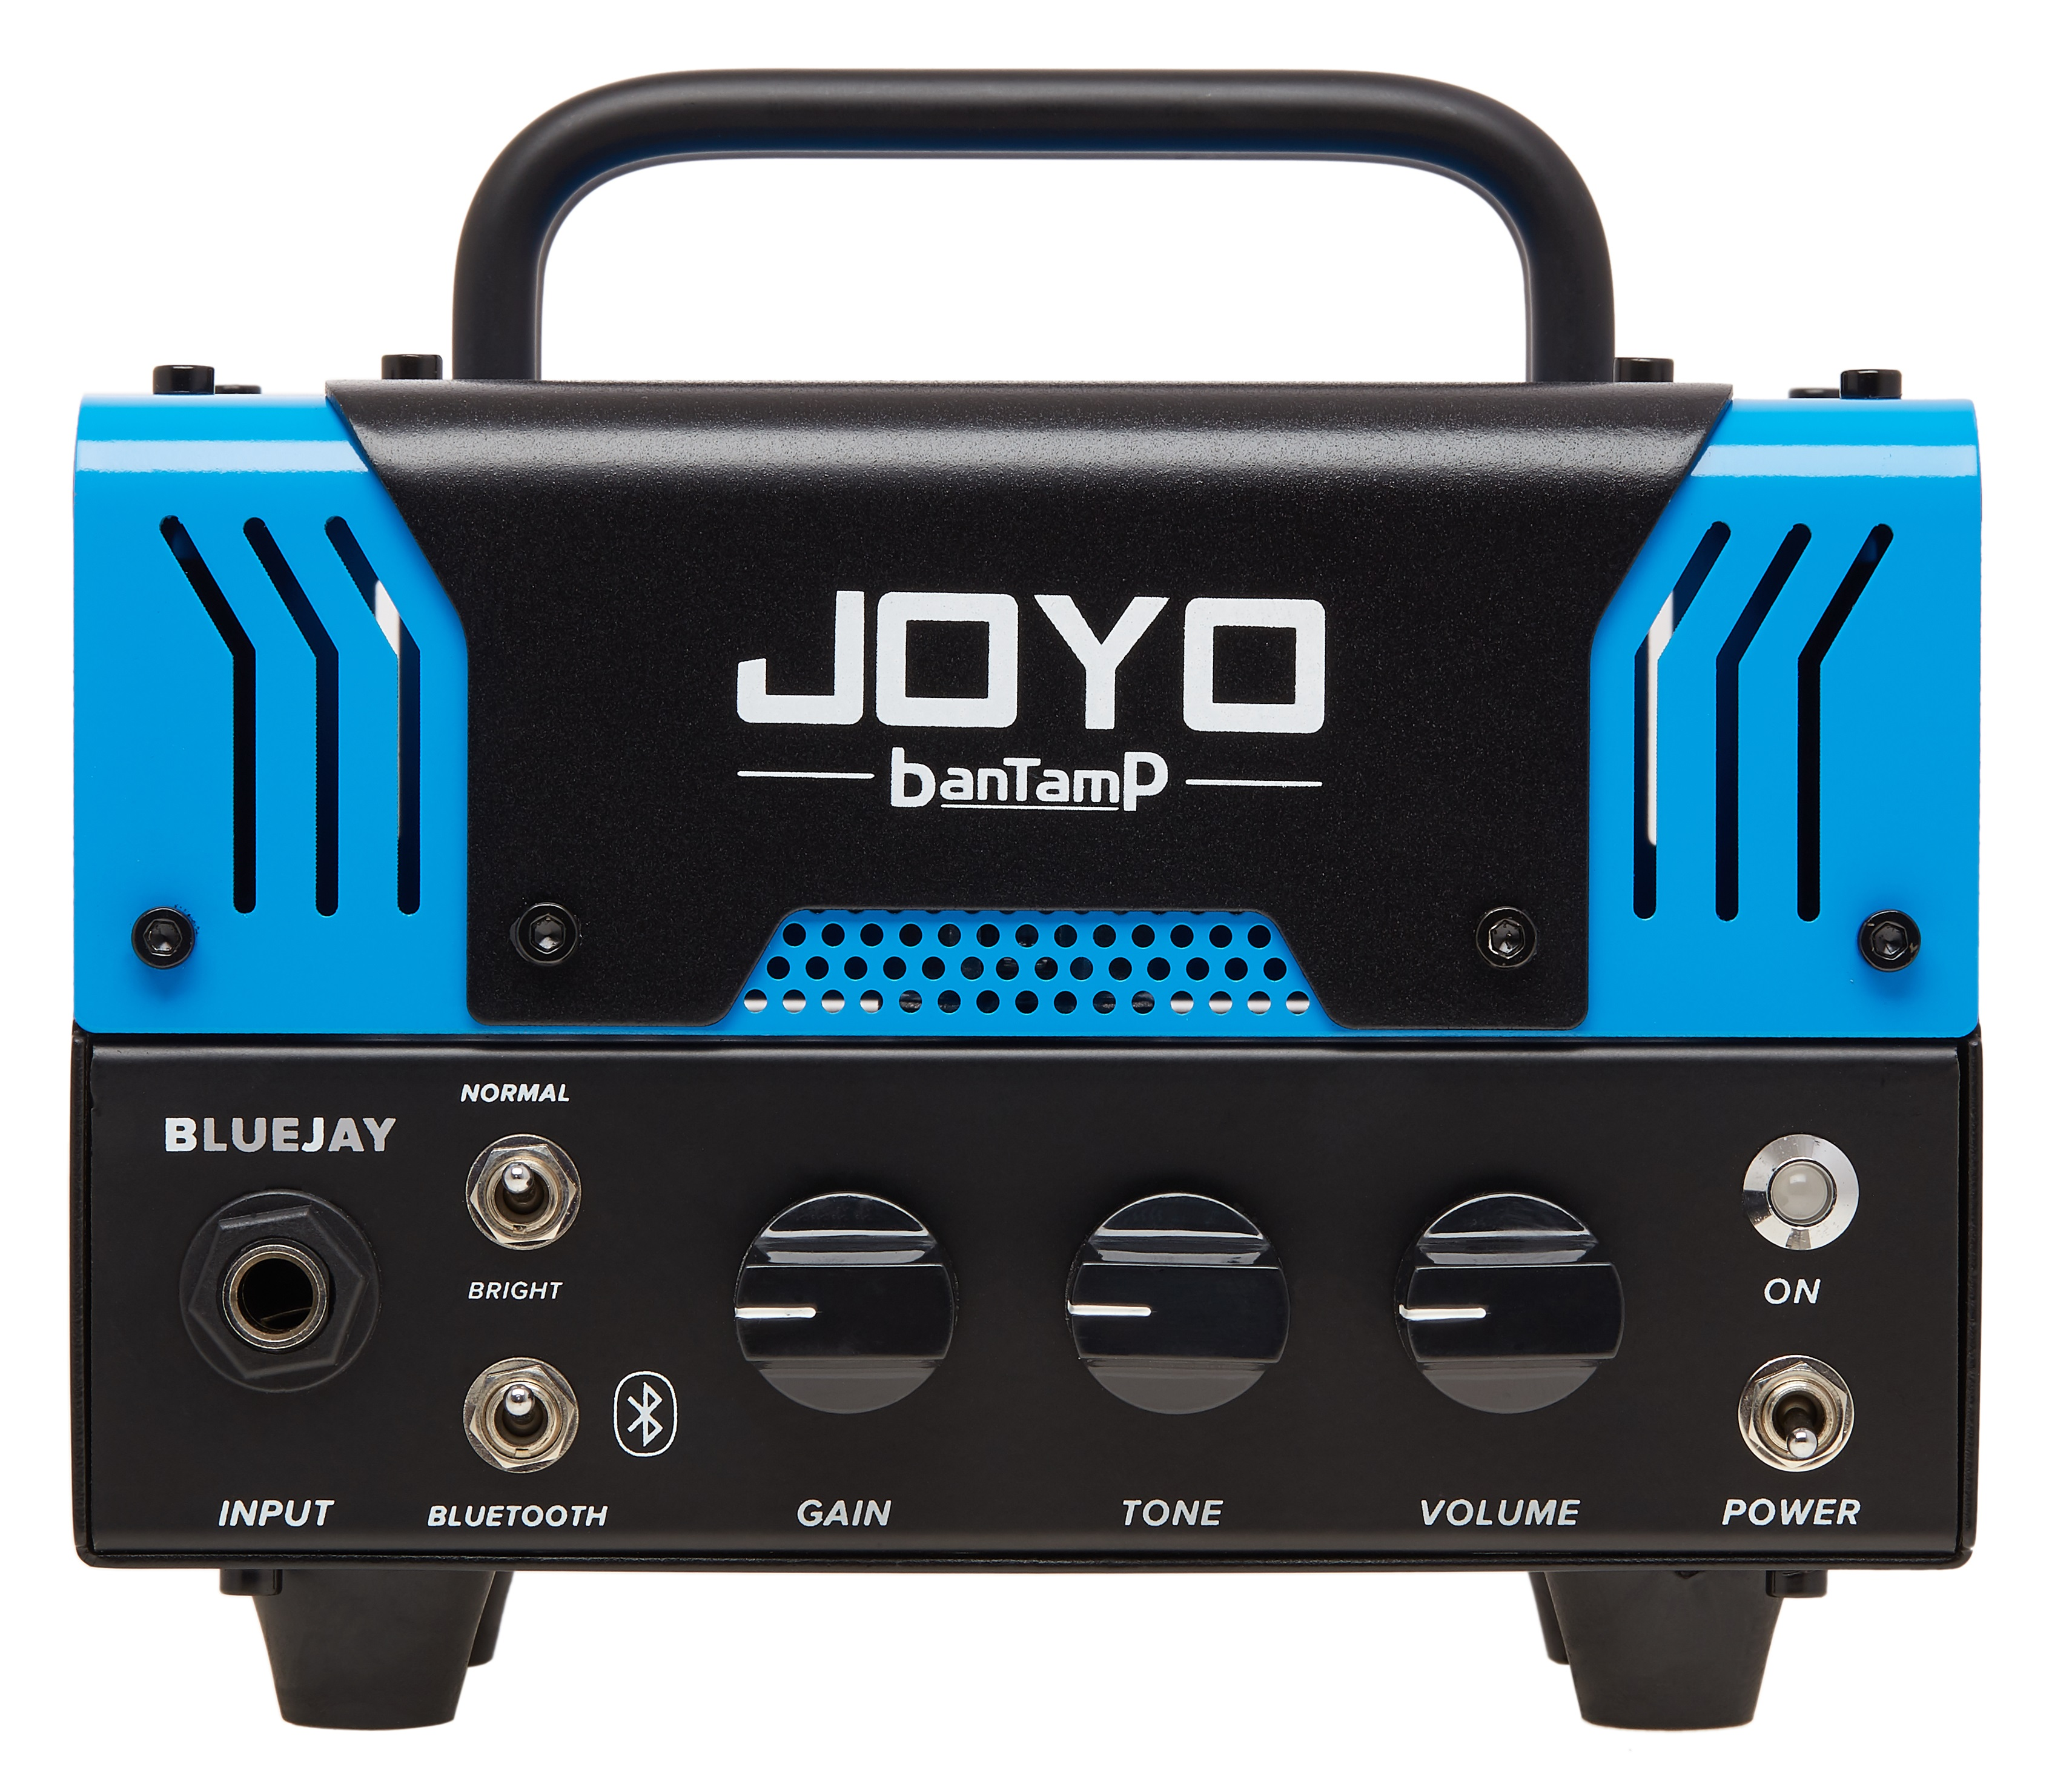 Joyo Bantamp Bluejay